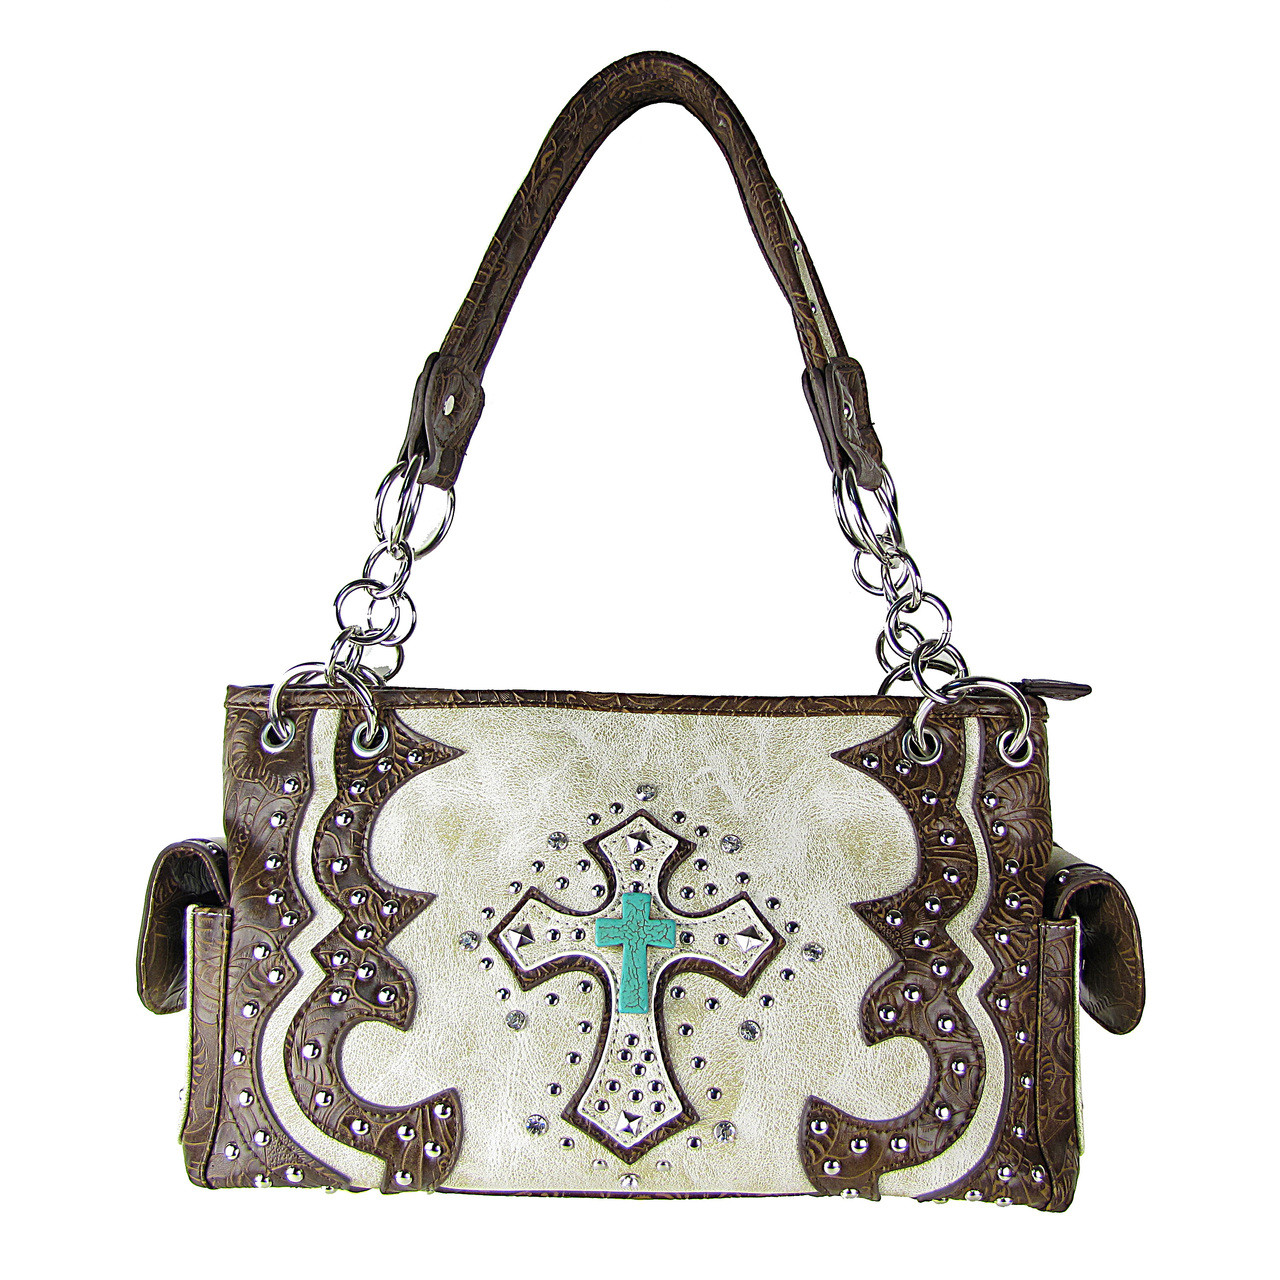 BEIGE WESTERN STUDDED RHINESTONE BLUE STONE CROSS LOOK SHOULDER HANDBAG HB1-W6CCRBEI